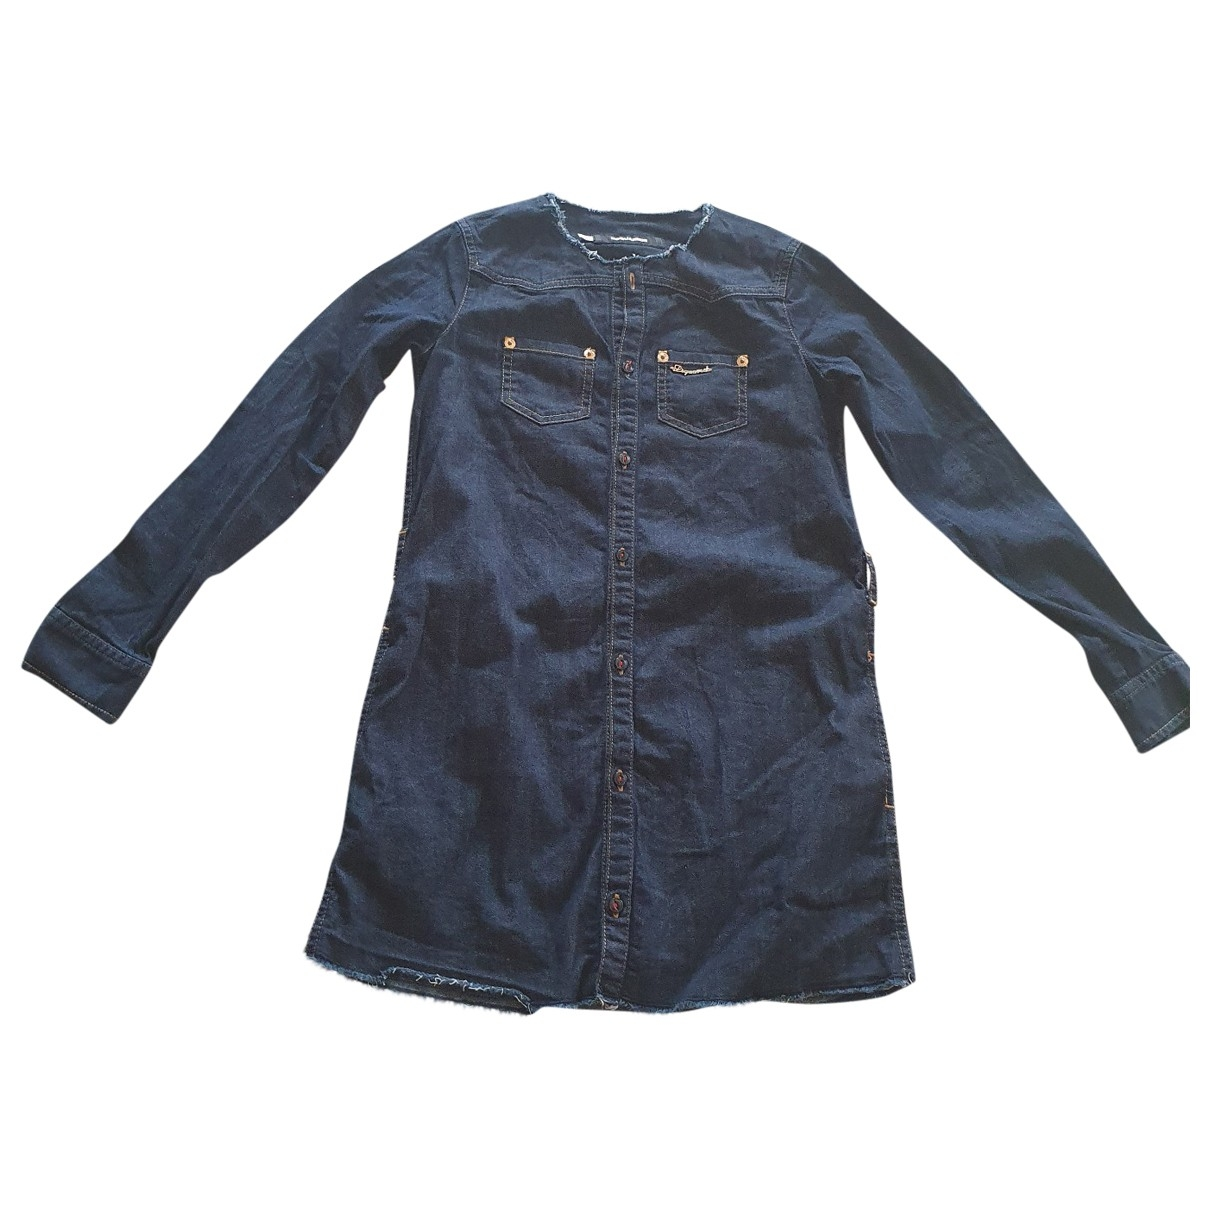 Dsquared2 \N Blue Denim - Jeans  top for Kids 10 years - up to 142cm FR